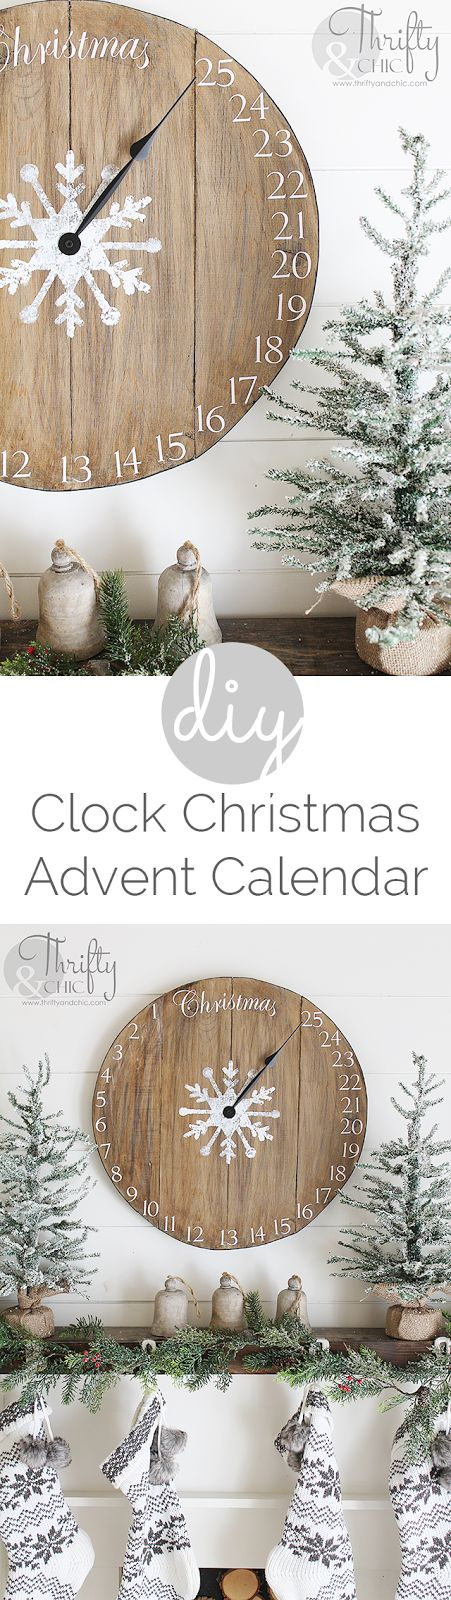 DIY Wood Clock Christmas Advent Calendar.